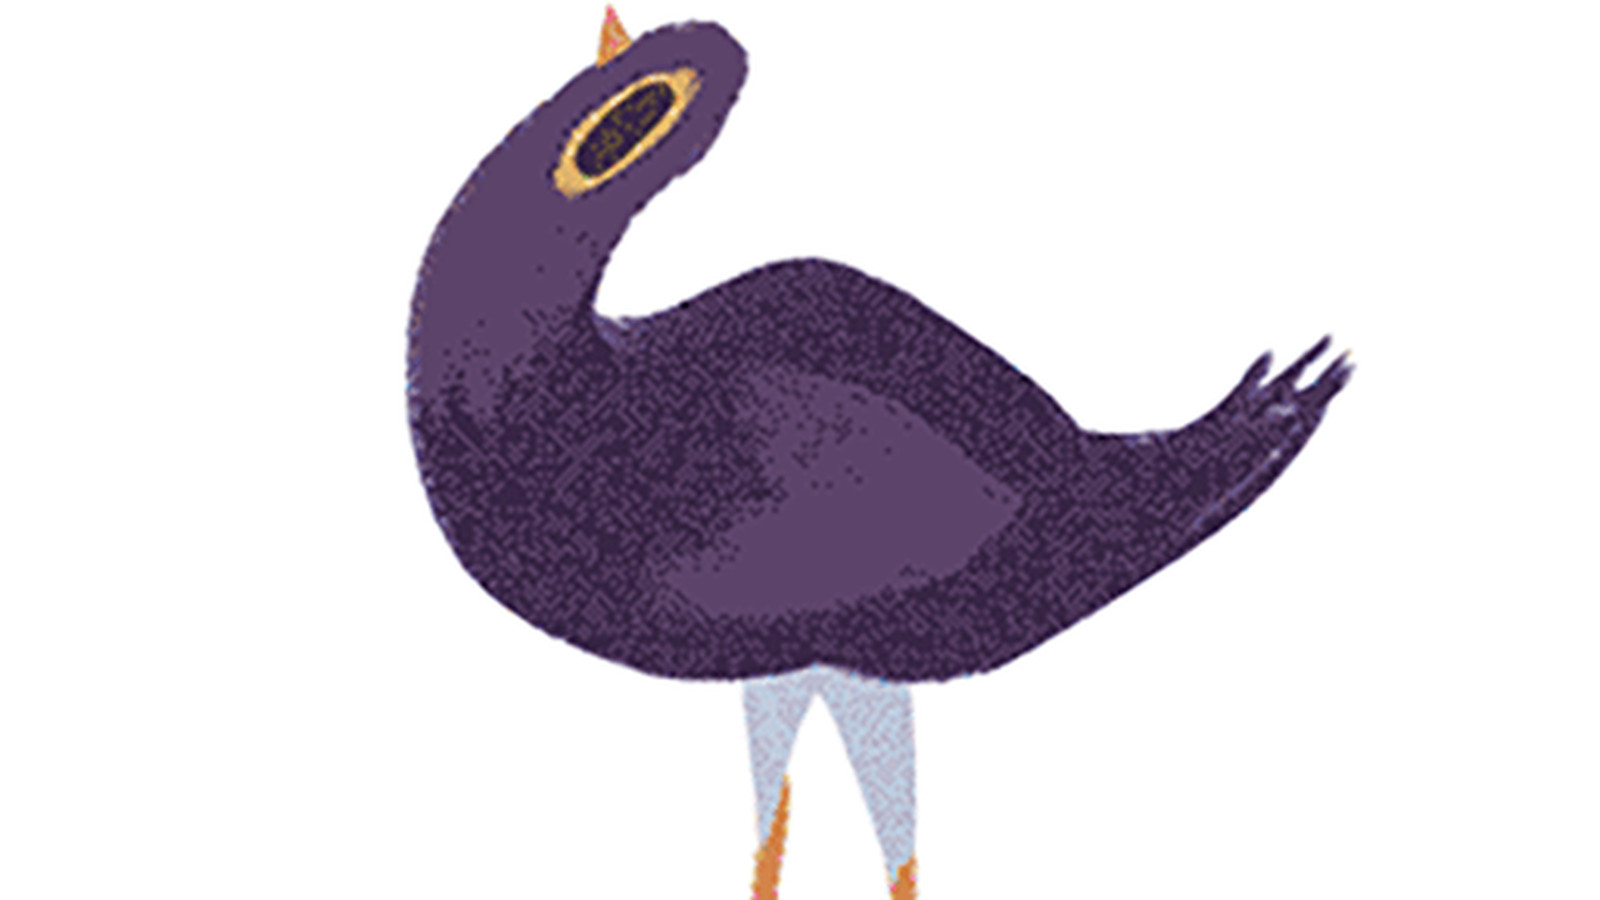 This very distressed purple bird is derailing conversations across Facebook